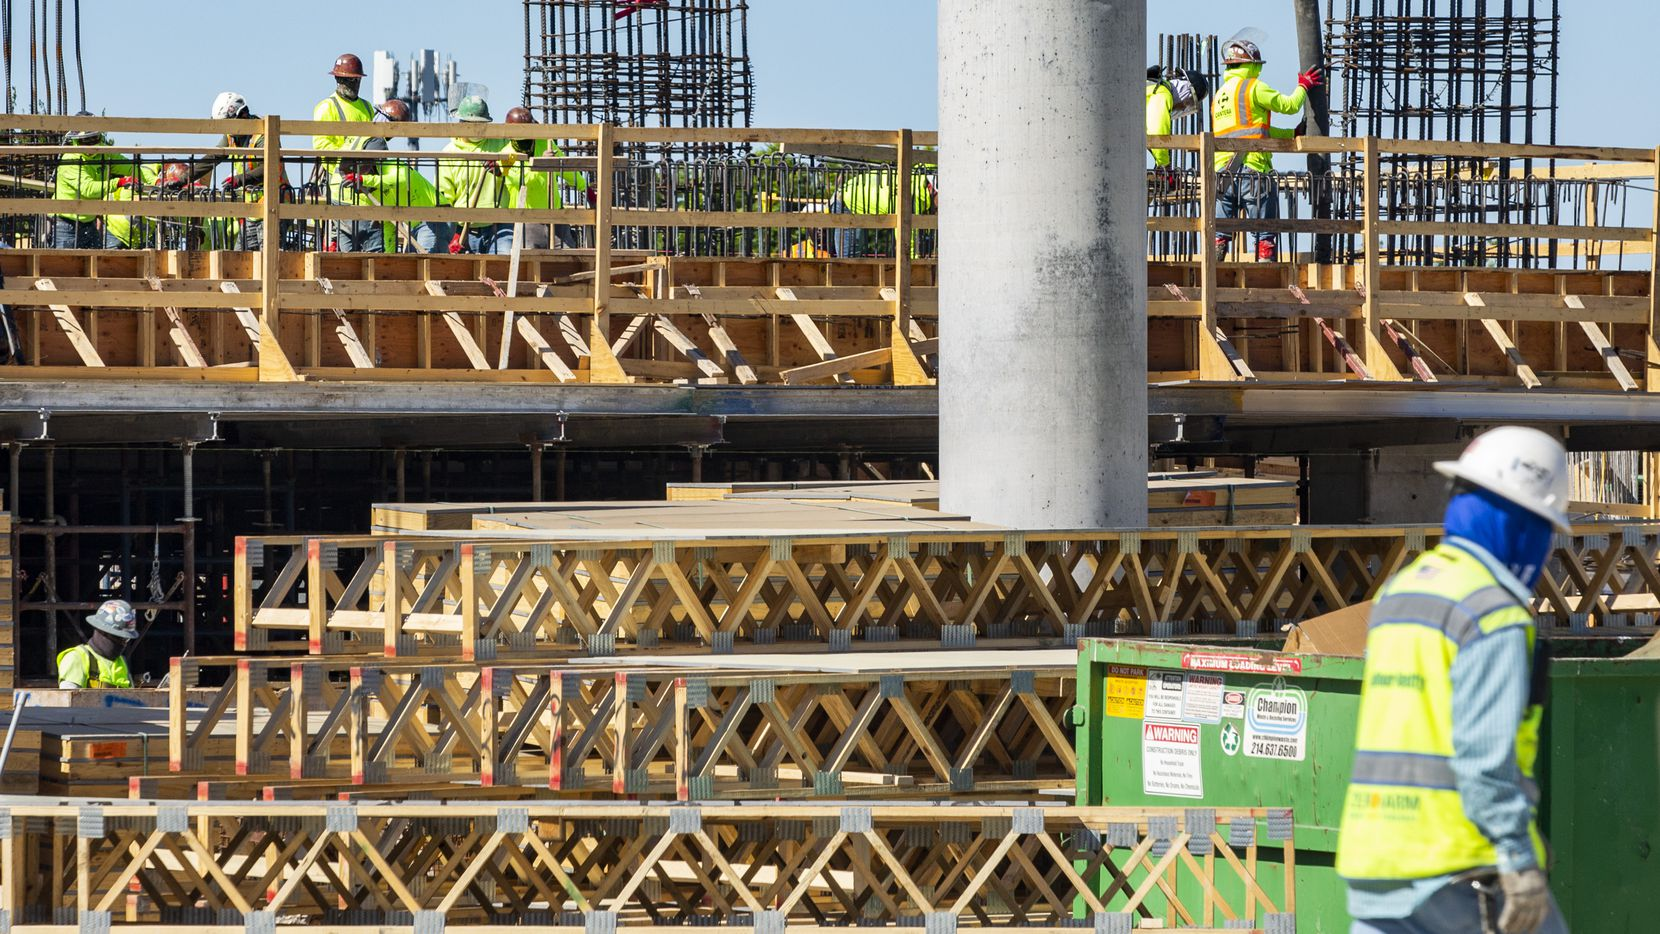 The economic recovery continued in May as Texas added over 34,000 jobs and had a slight drop in the unemployment rate. But the construction industry lost 3,100 positions statewide, even while residents were clamoring for new homes.